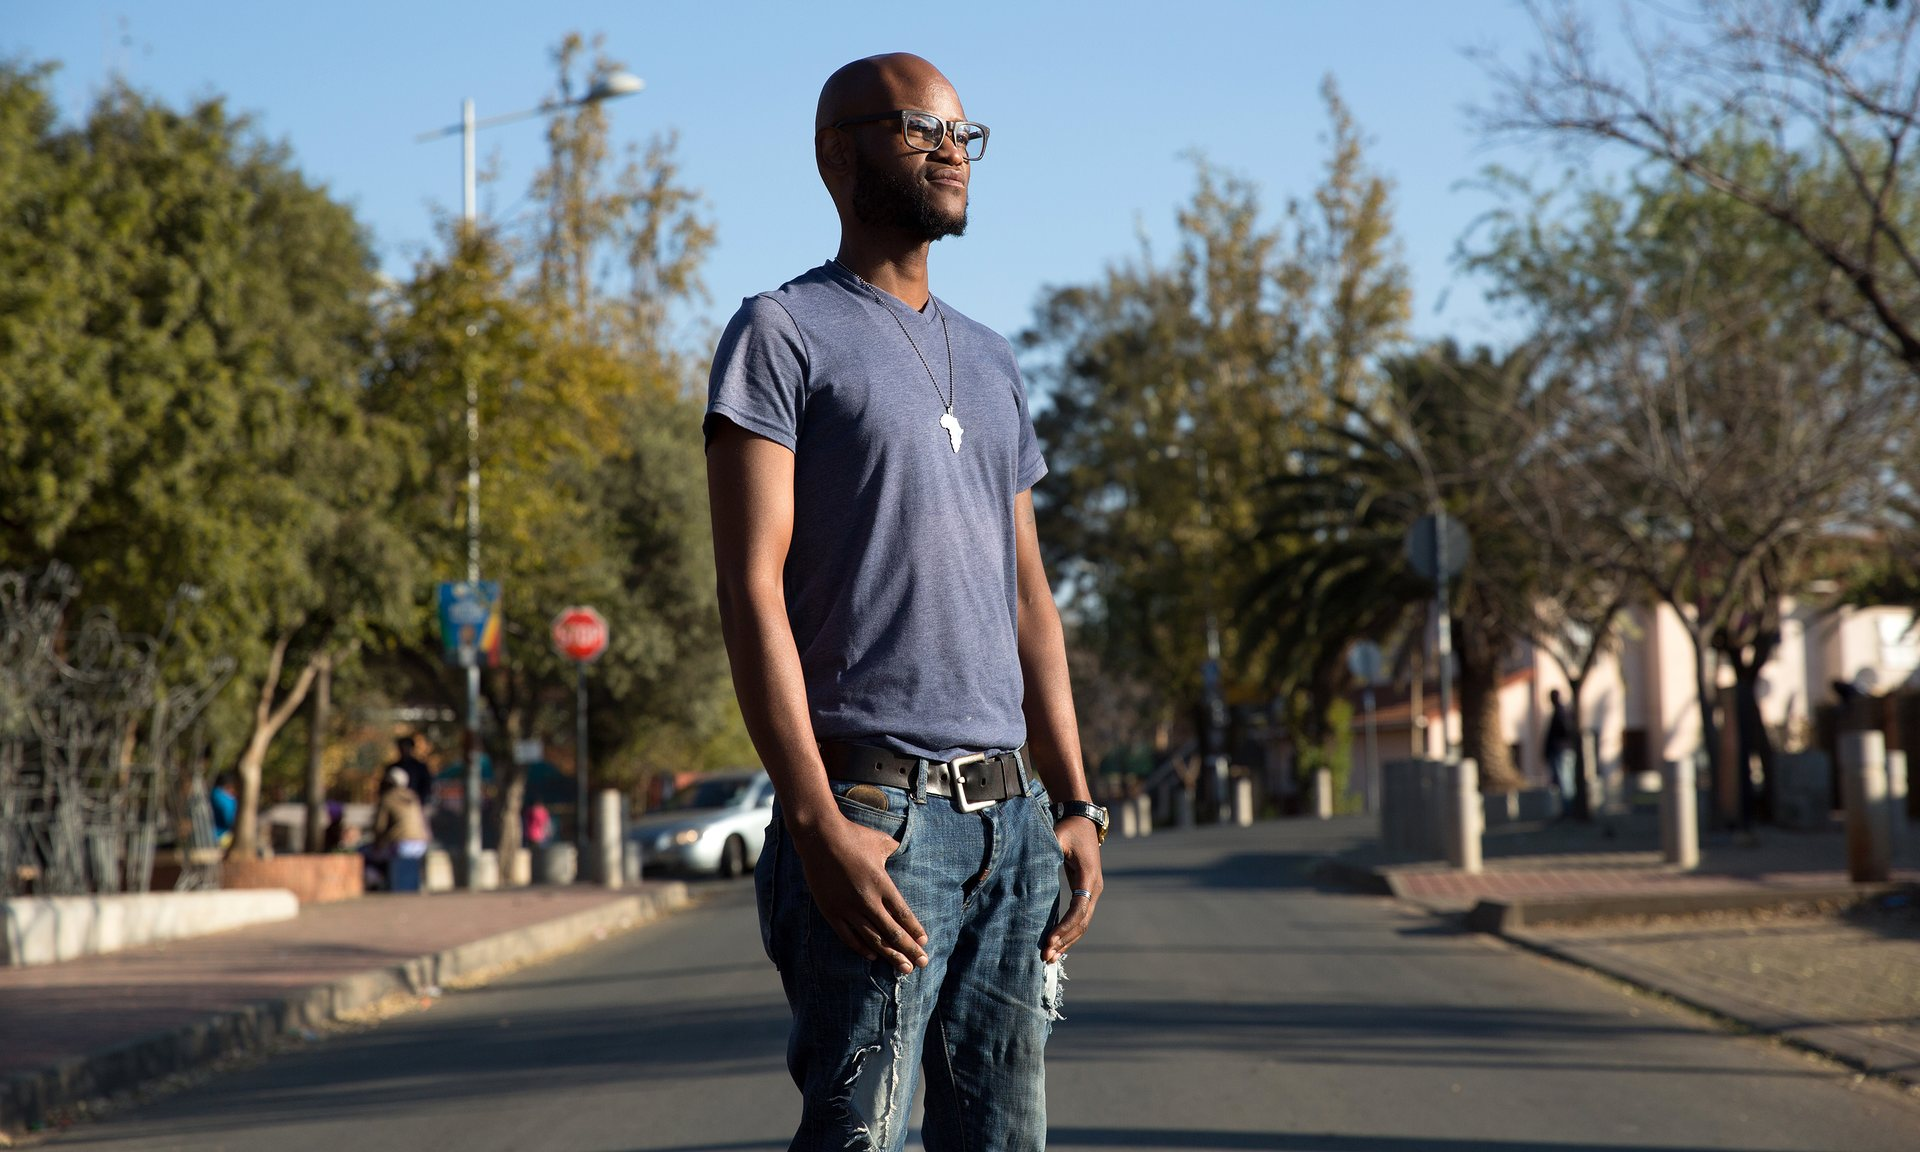 Zongezile Makhubo on Vilakazi Street, close to where his uncle was photographed during the uprising. Photograph: James Oatway for the Guardian